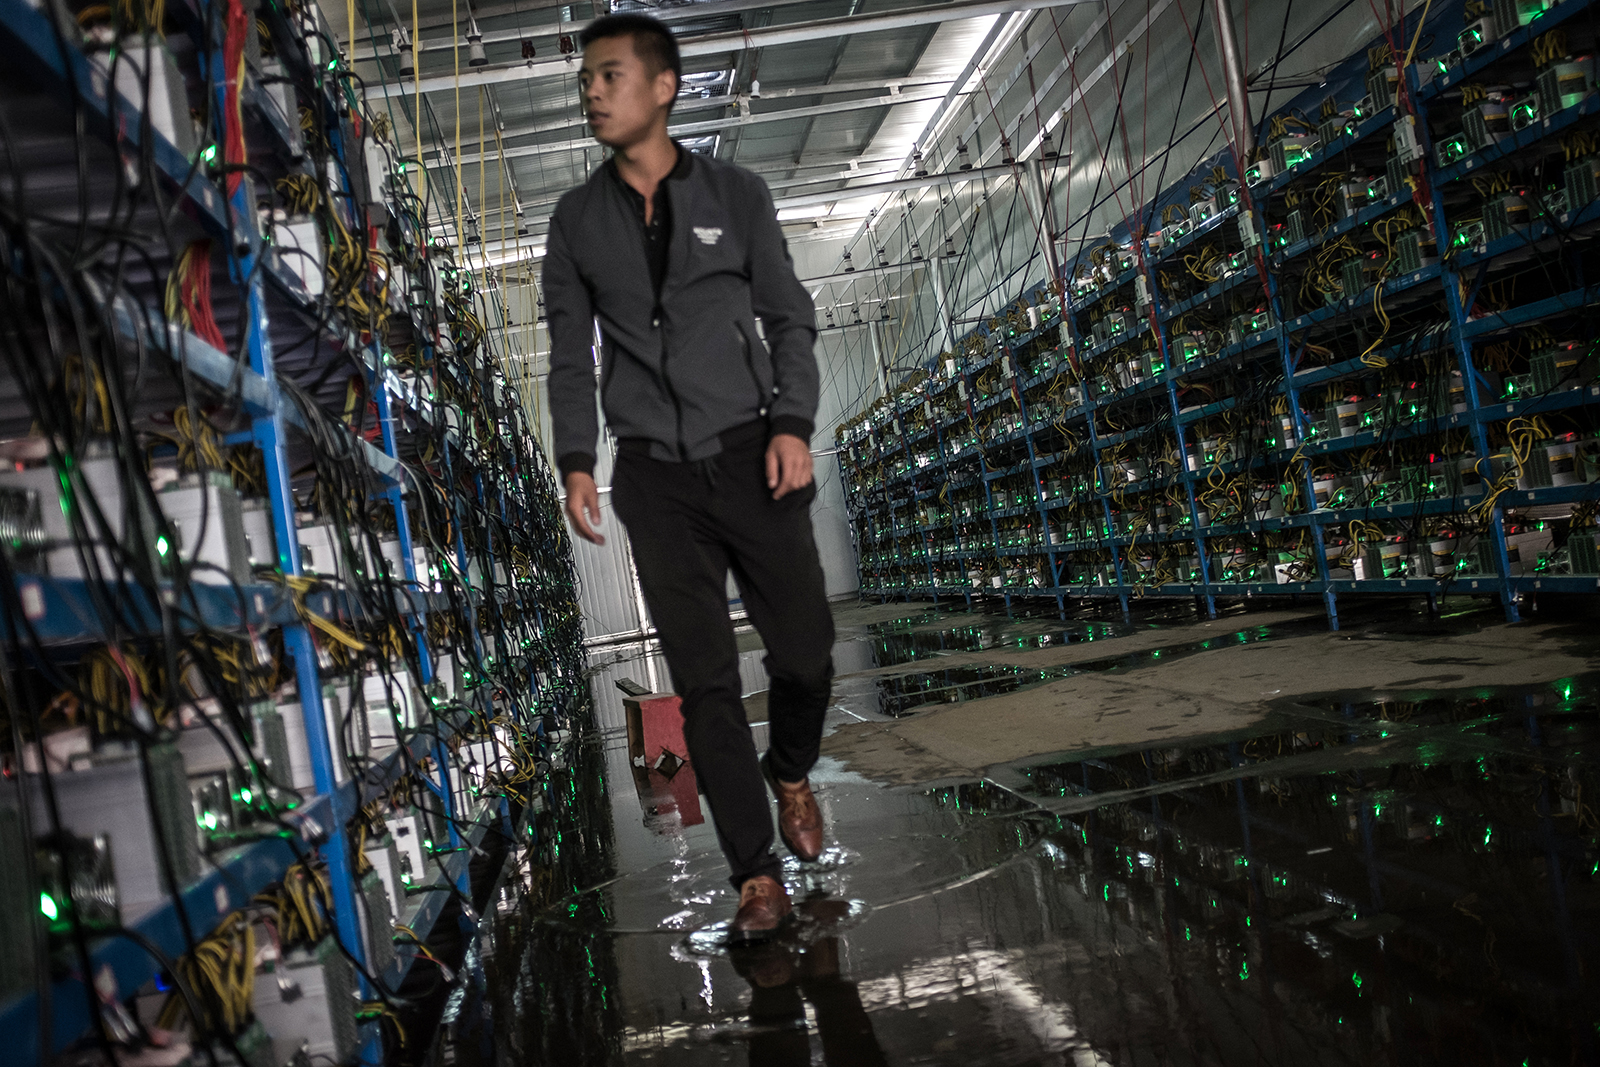 Laizhou rehi mining bitcoins cryptocurrency iconoclast